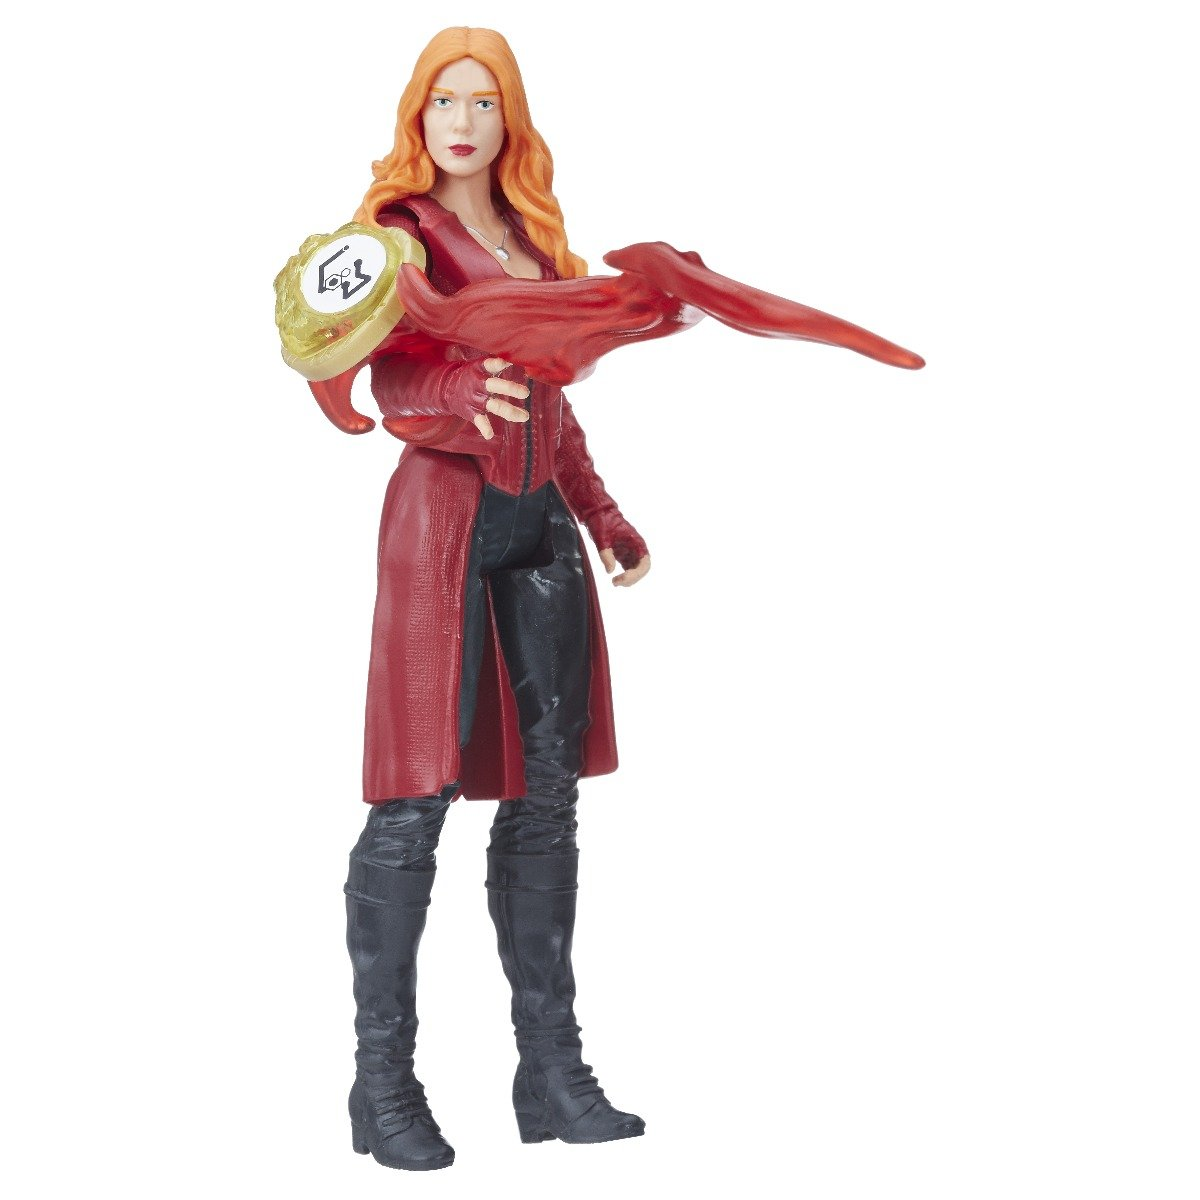 Figurina Avengers Infinity War, Scarlet Witch, 15 cm